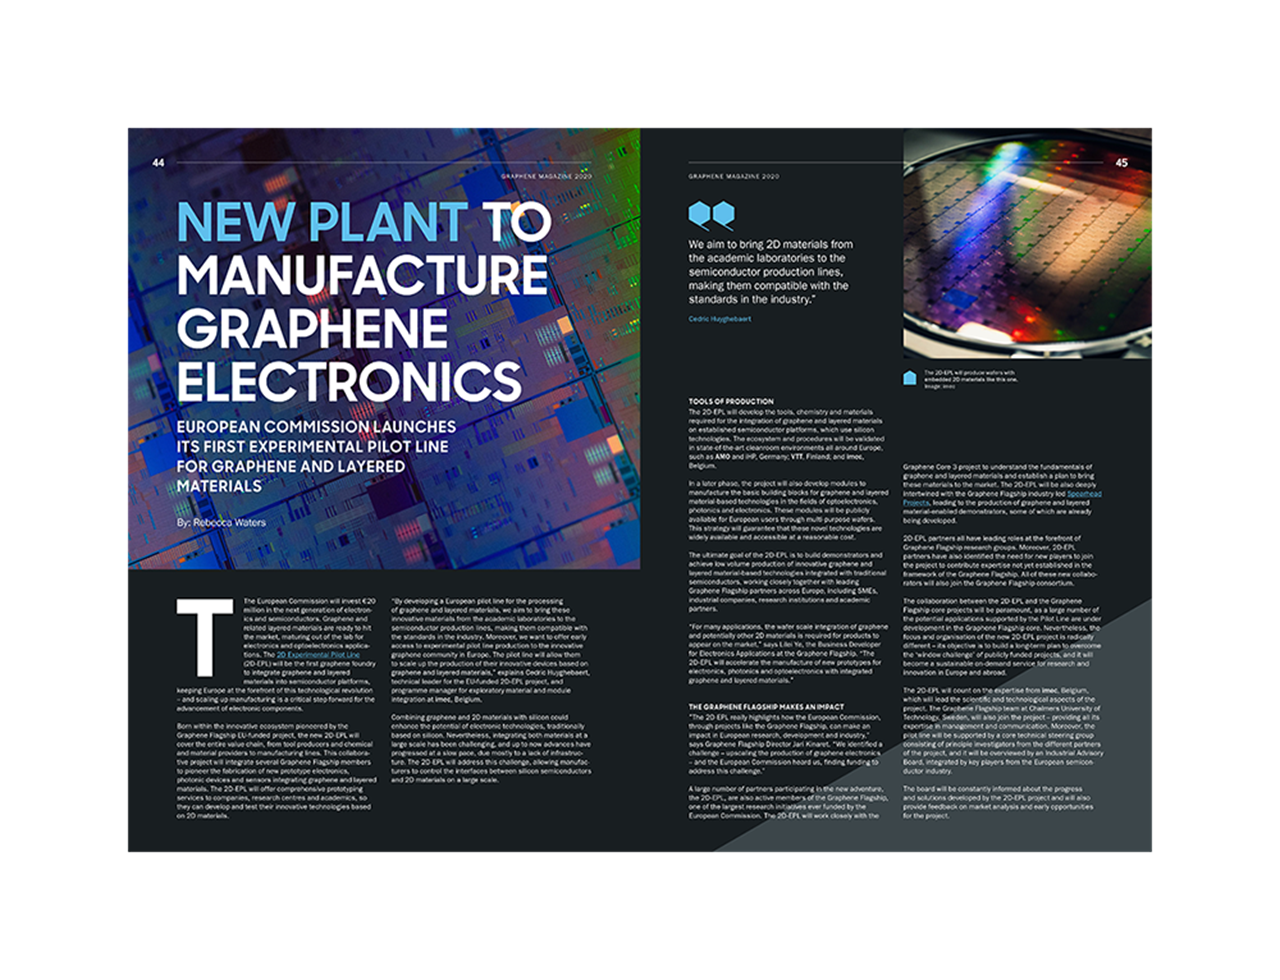 Magazine article image: New plant to manufacture graphene electronics